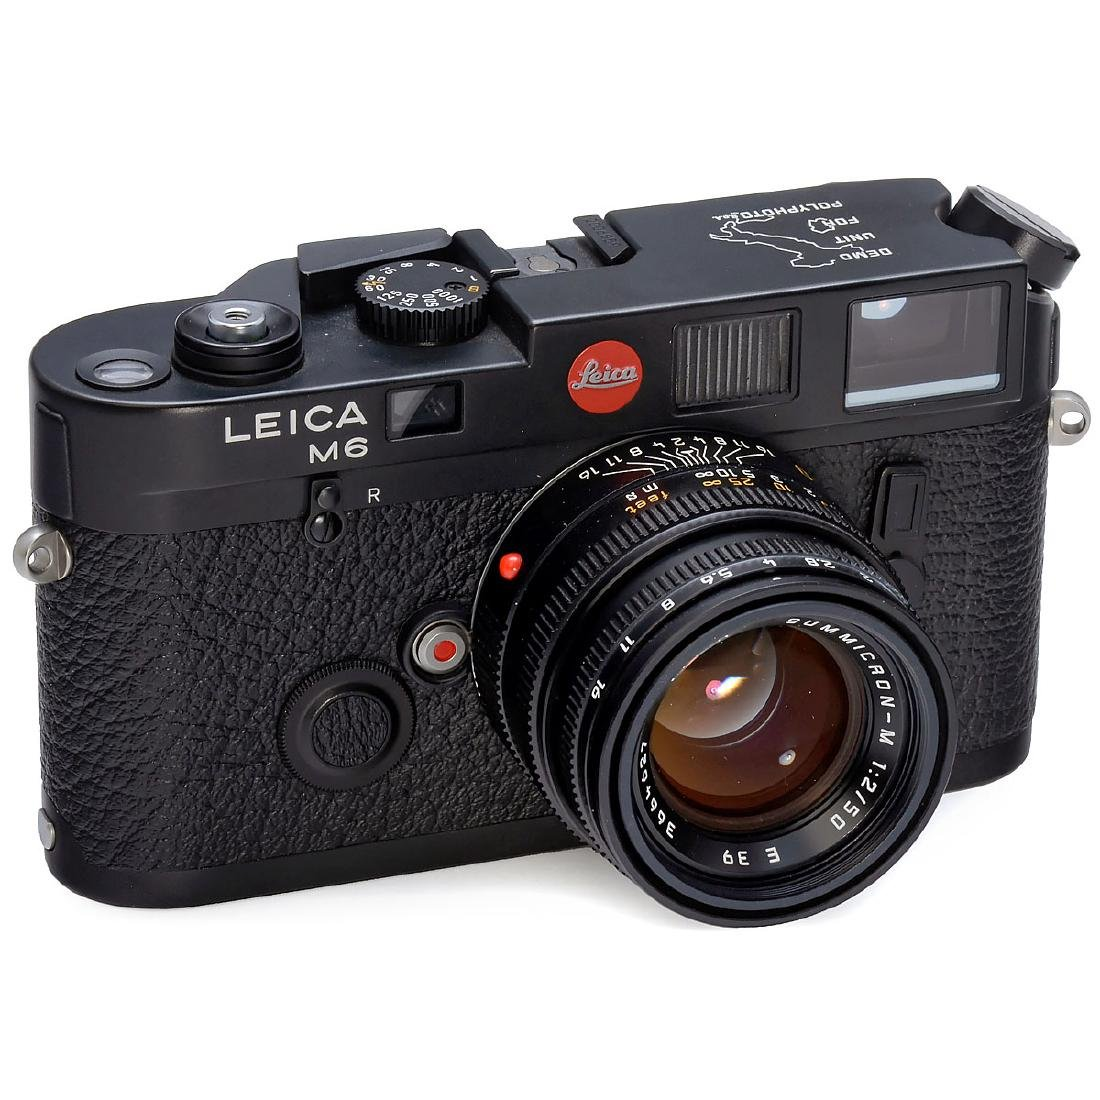 "Leica M6 ""Polyphoto"" with Summicron, 1994"